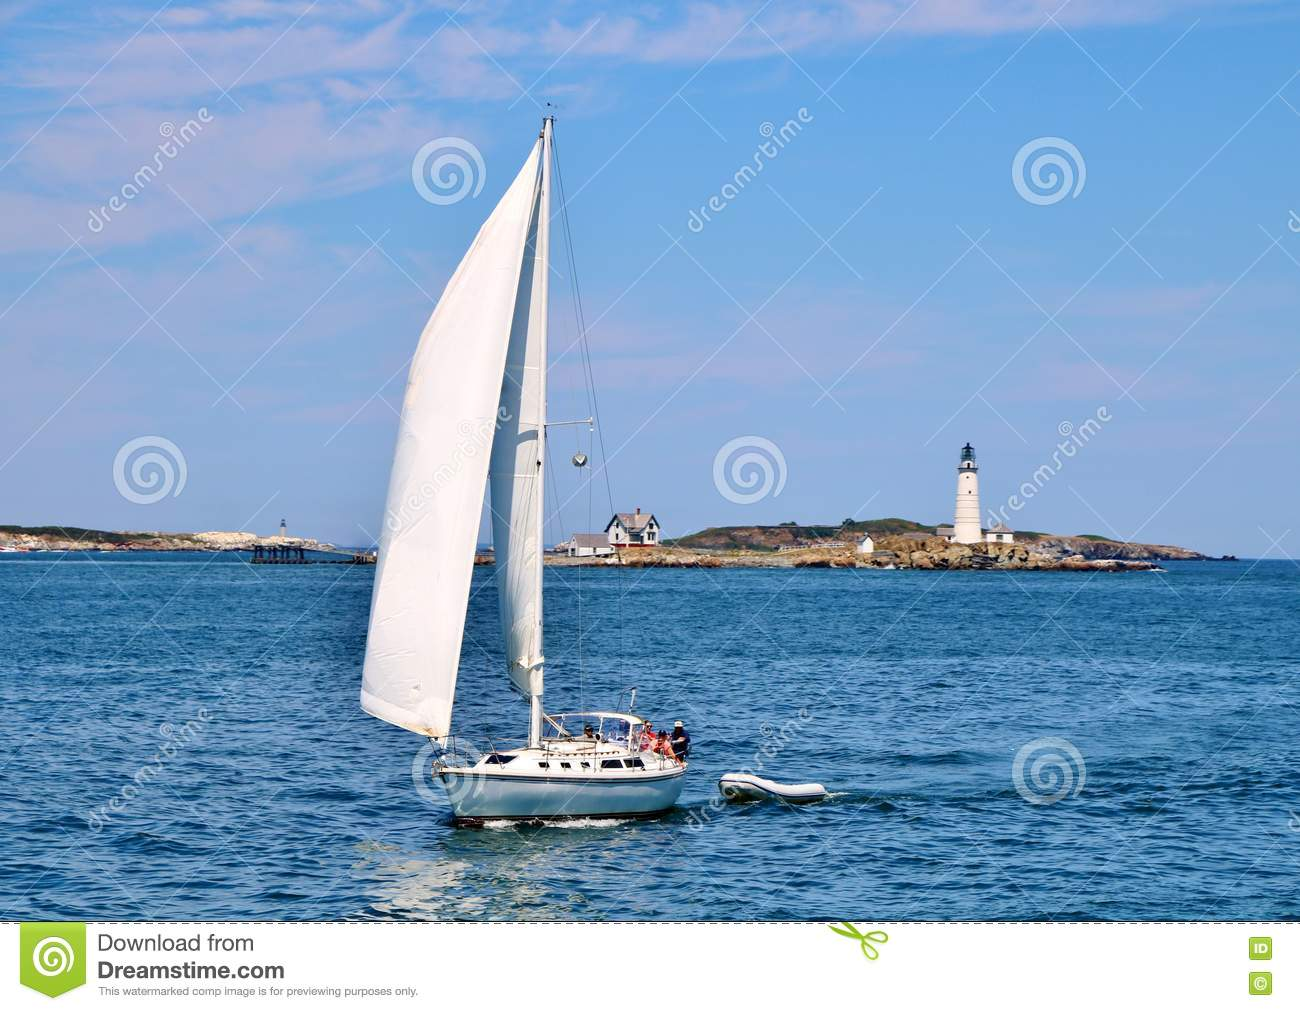 Yacht Sailing in front of Boston Harbor Lighthouse